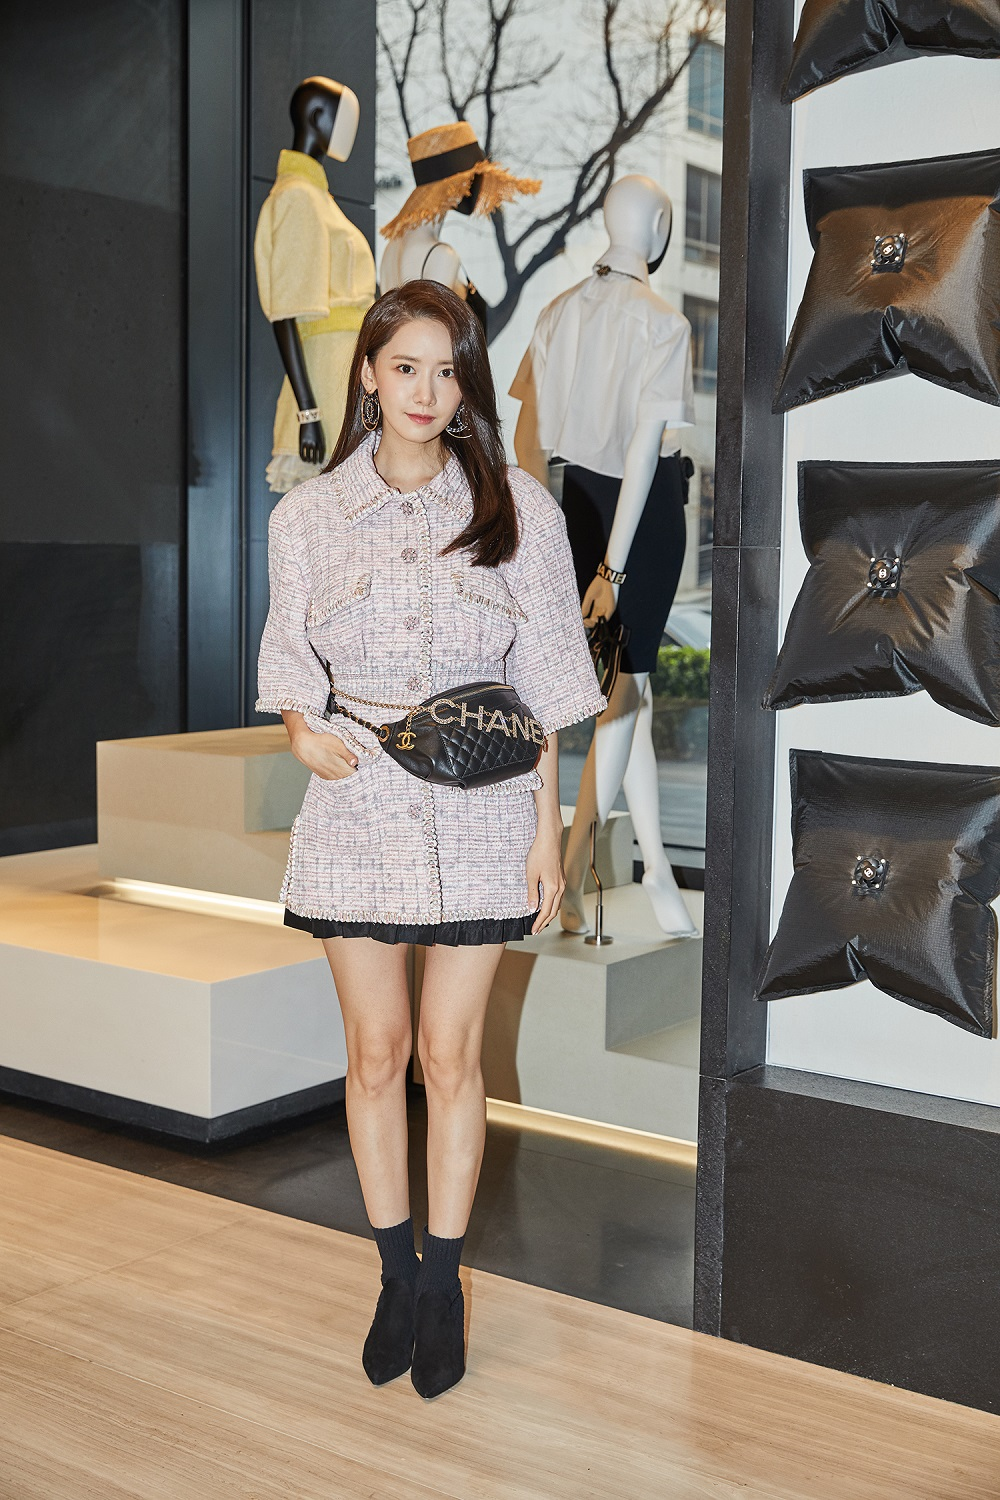 Yoona Lim wore a pink and white tweed jacket (look 19 from the Spring-Summer 2019 Ready-to-Wear collection), CHANEL accessories and bag.